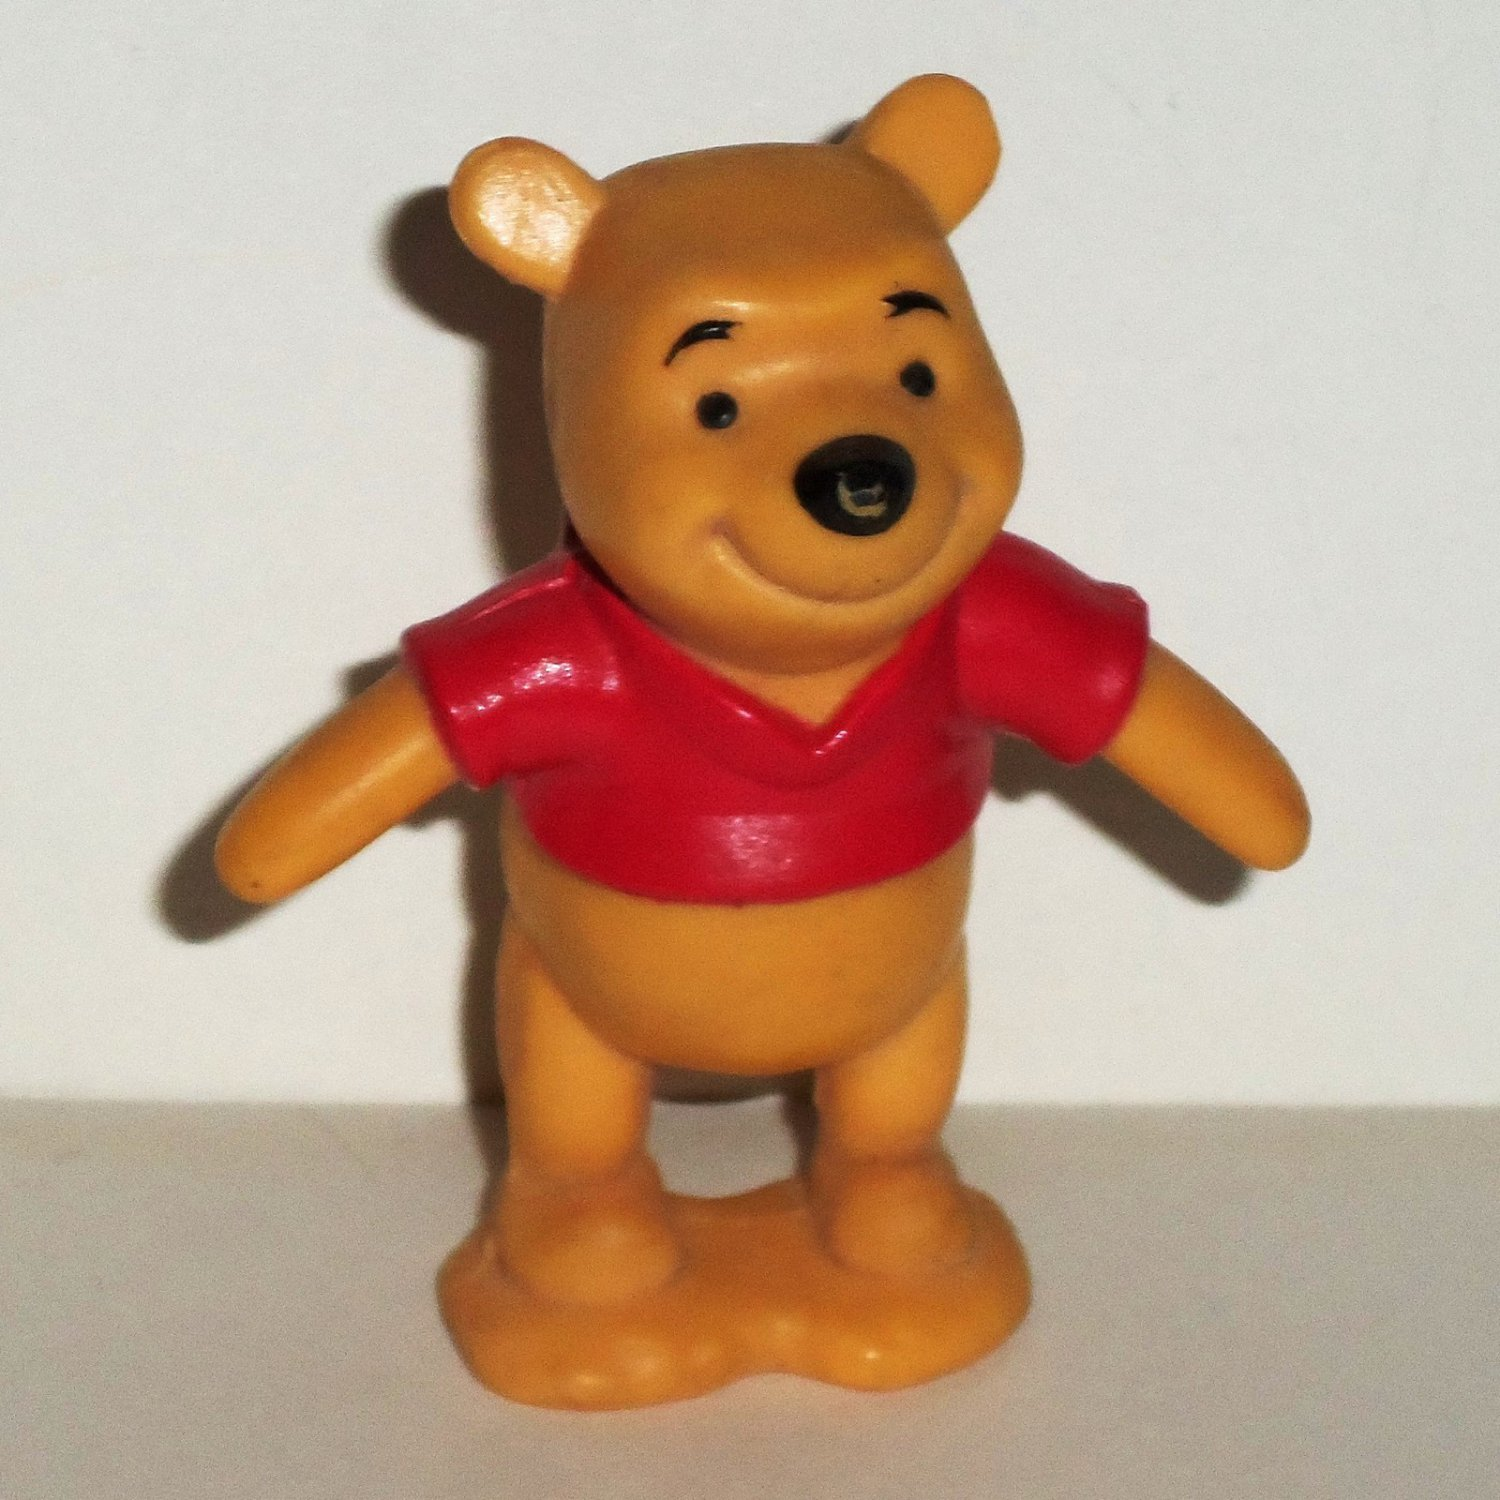 Disney Winnie The Pooh PVC Figure from Toddler Collectibles Set Mattel 66610 Loose Used